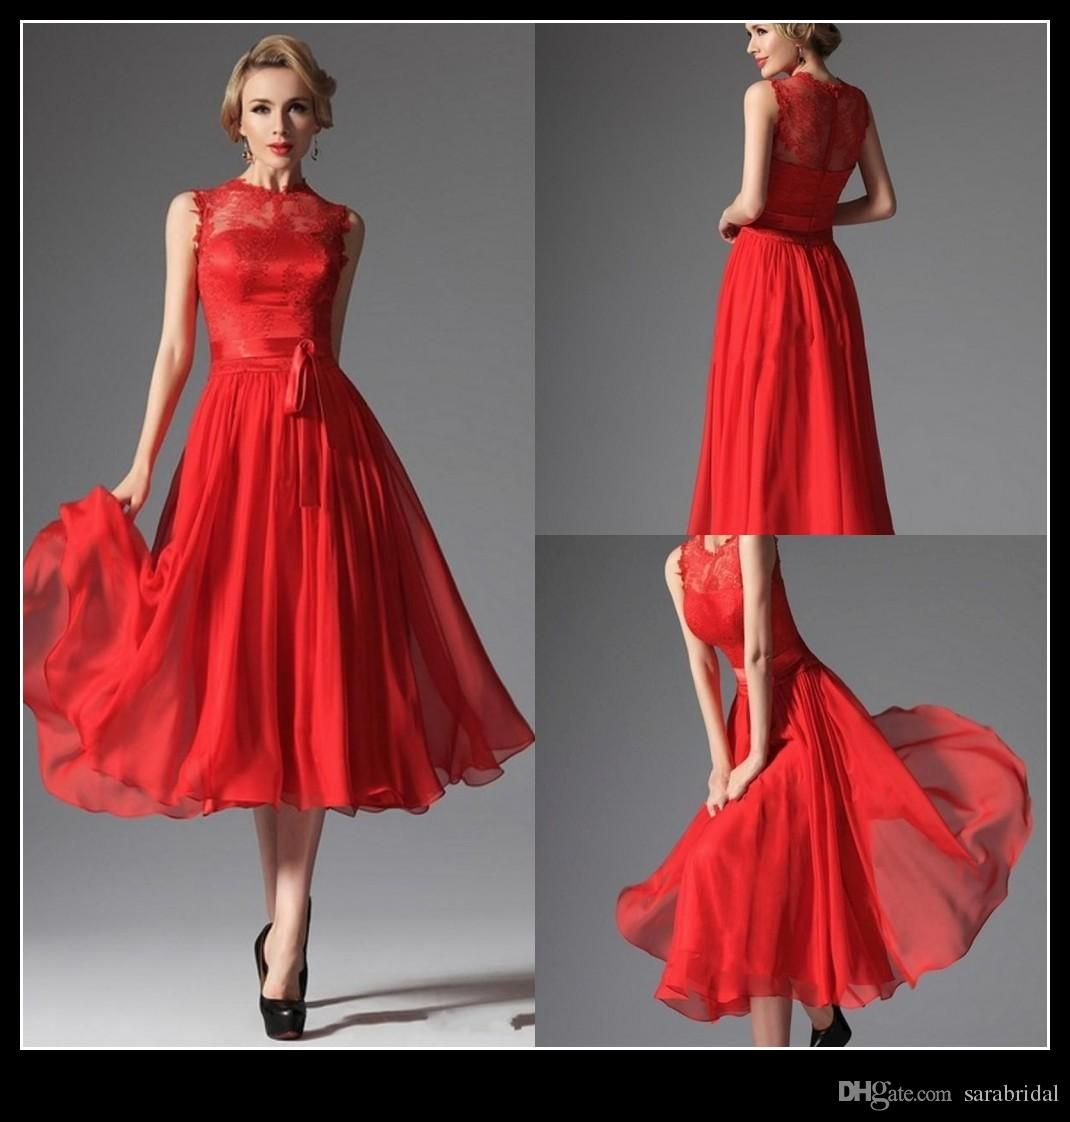 Charming Tea Length Bridesmaid Dress 2016 Lace Chiffon A Line Red